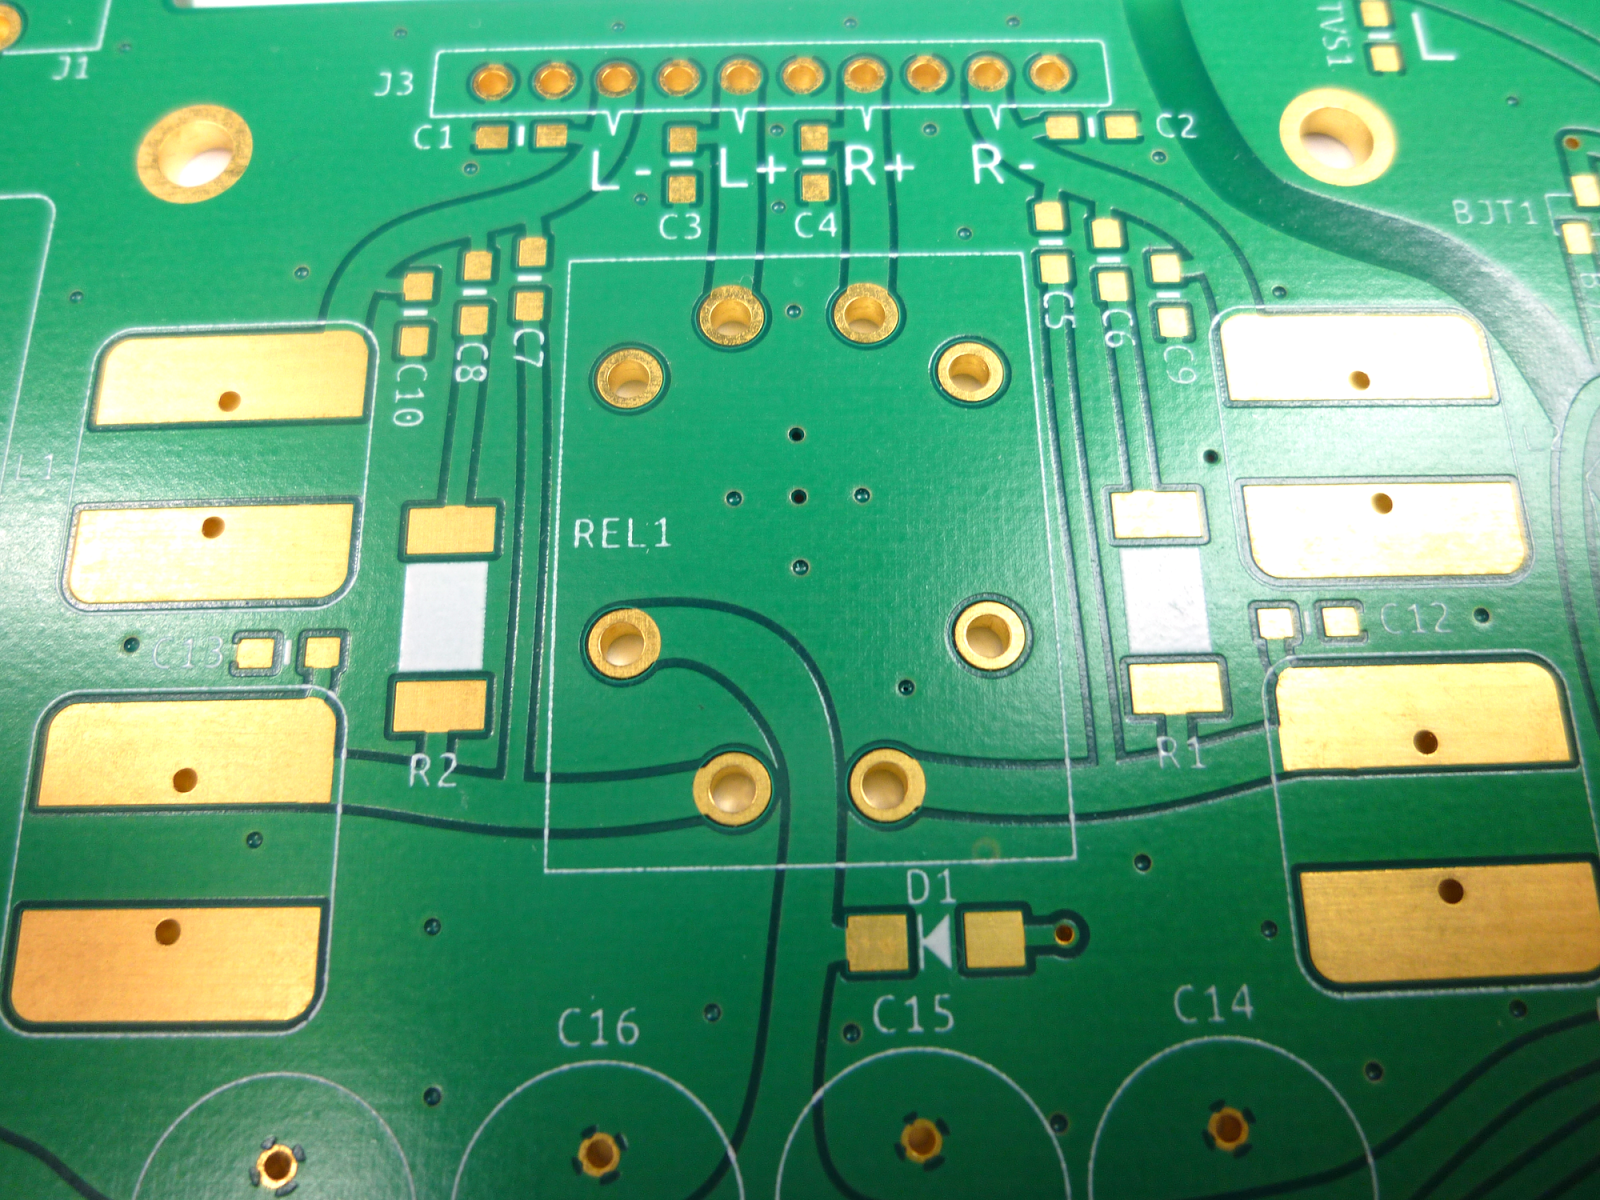 A design beautifully manufactured by Cambridge Circuits